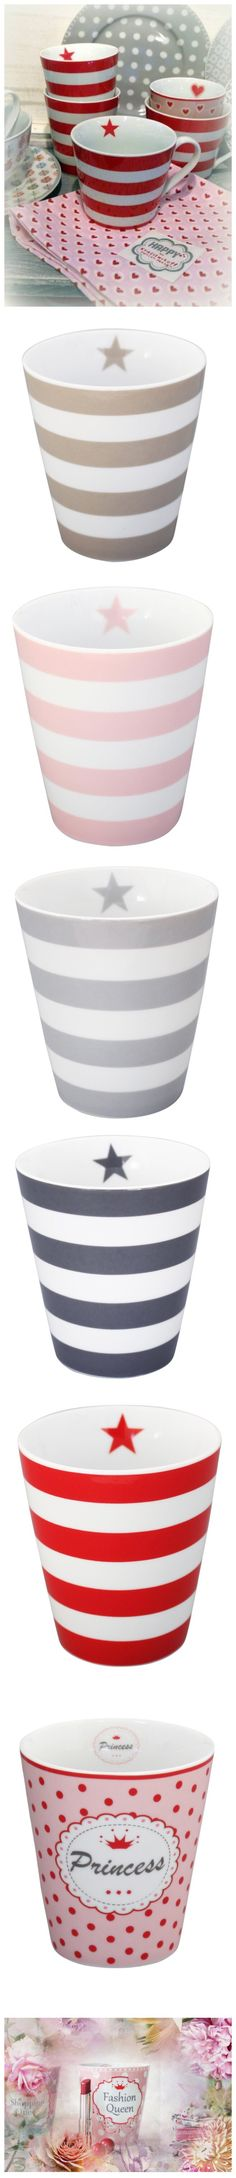 the brand new Cups by Krasilnikoff  choose your favorite or take them all